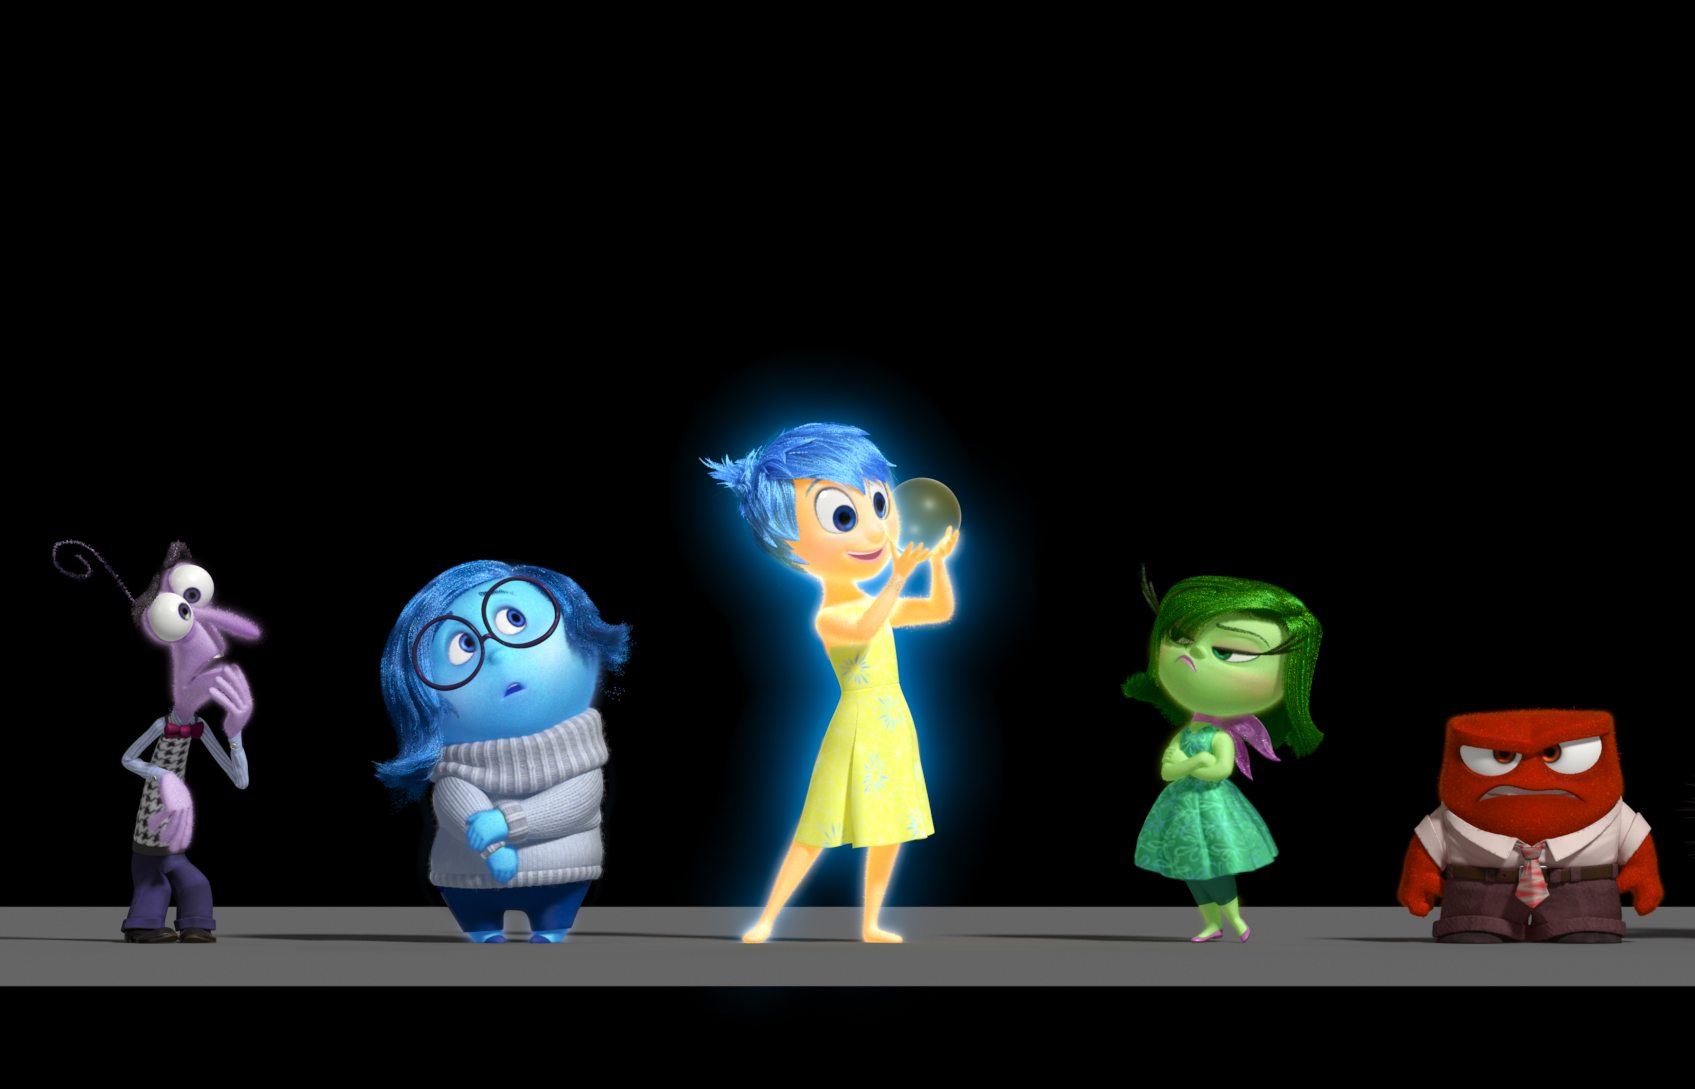 An Inside Look at Pixar's New Movie, 'Inside Out'